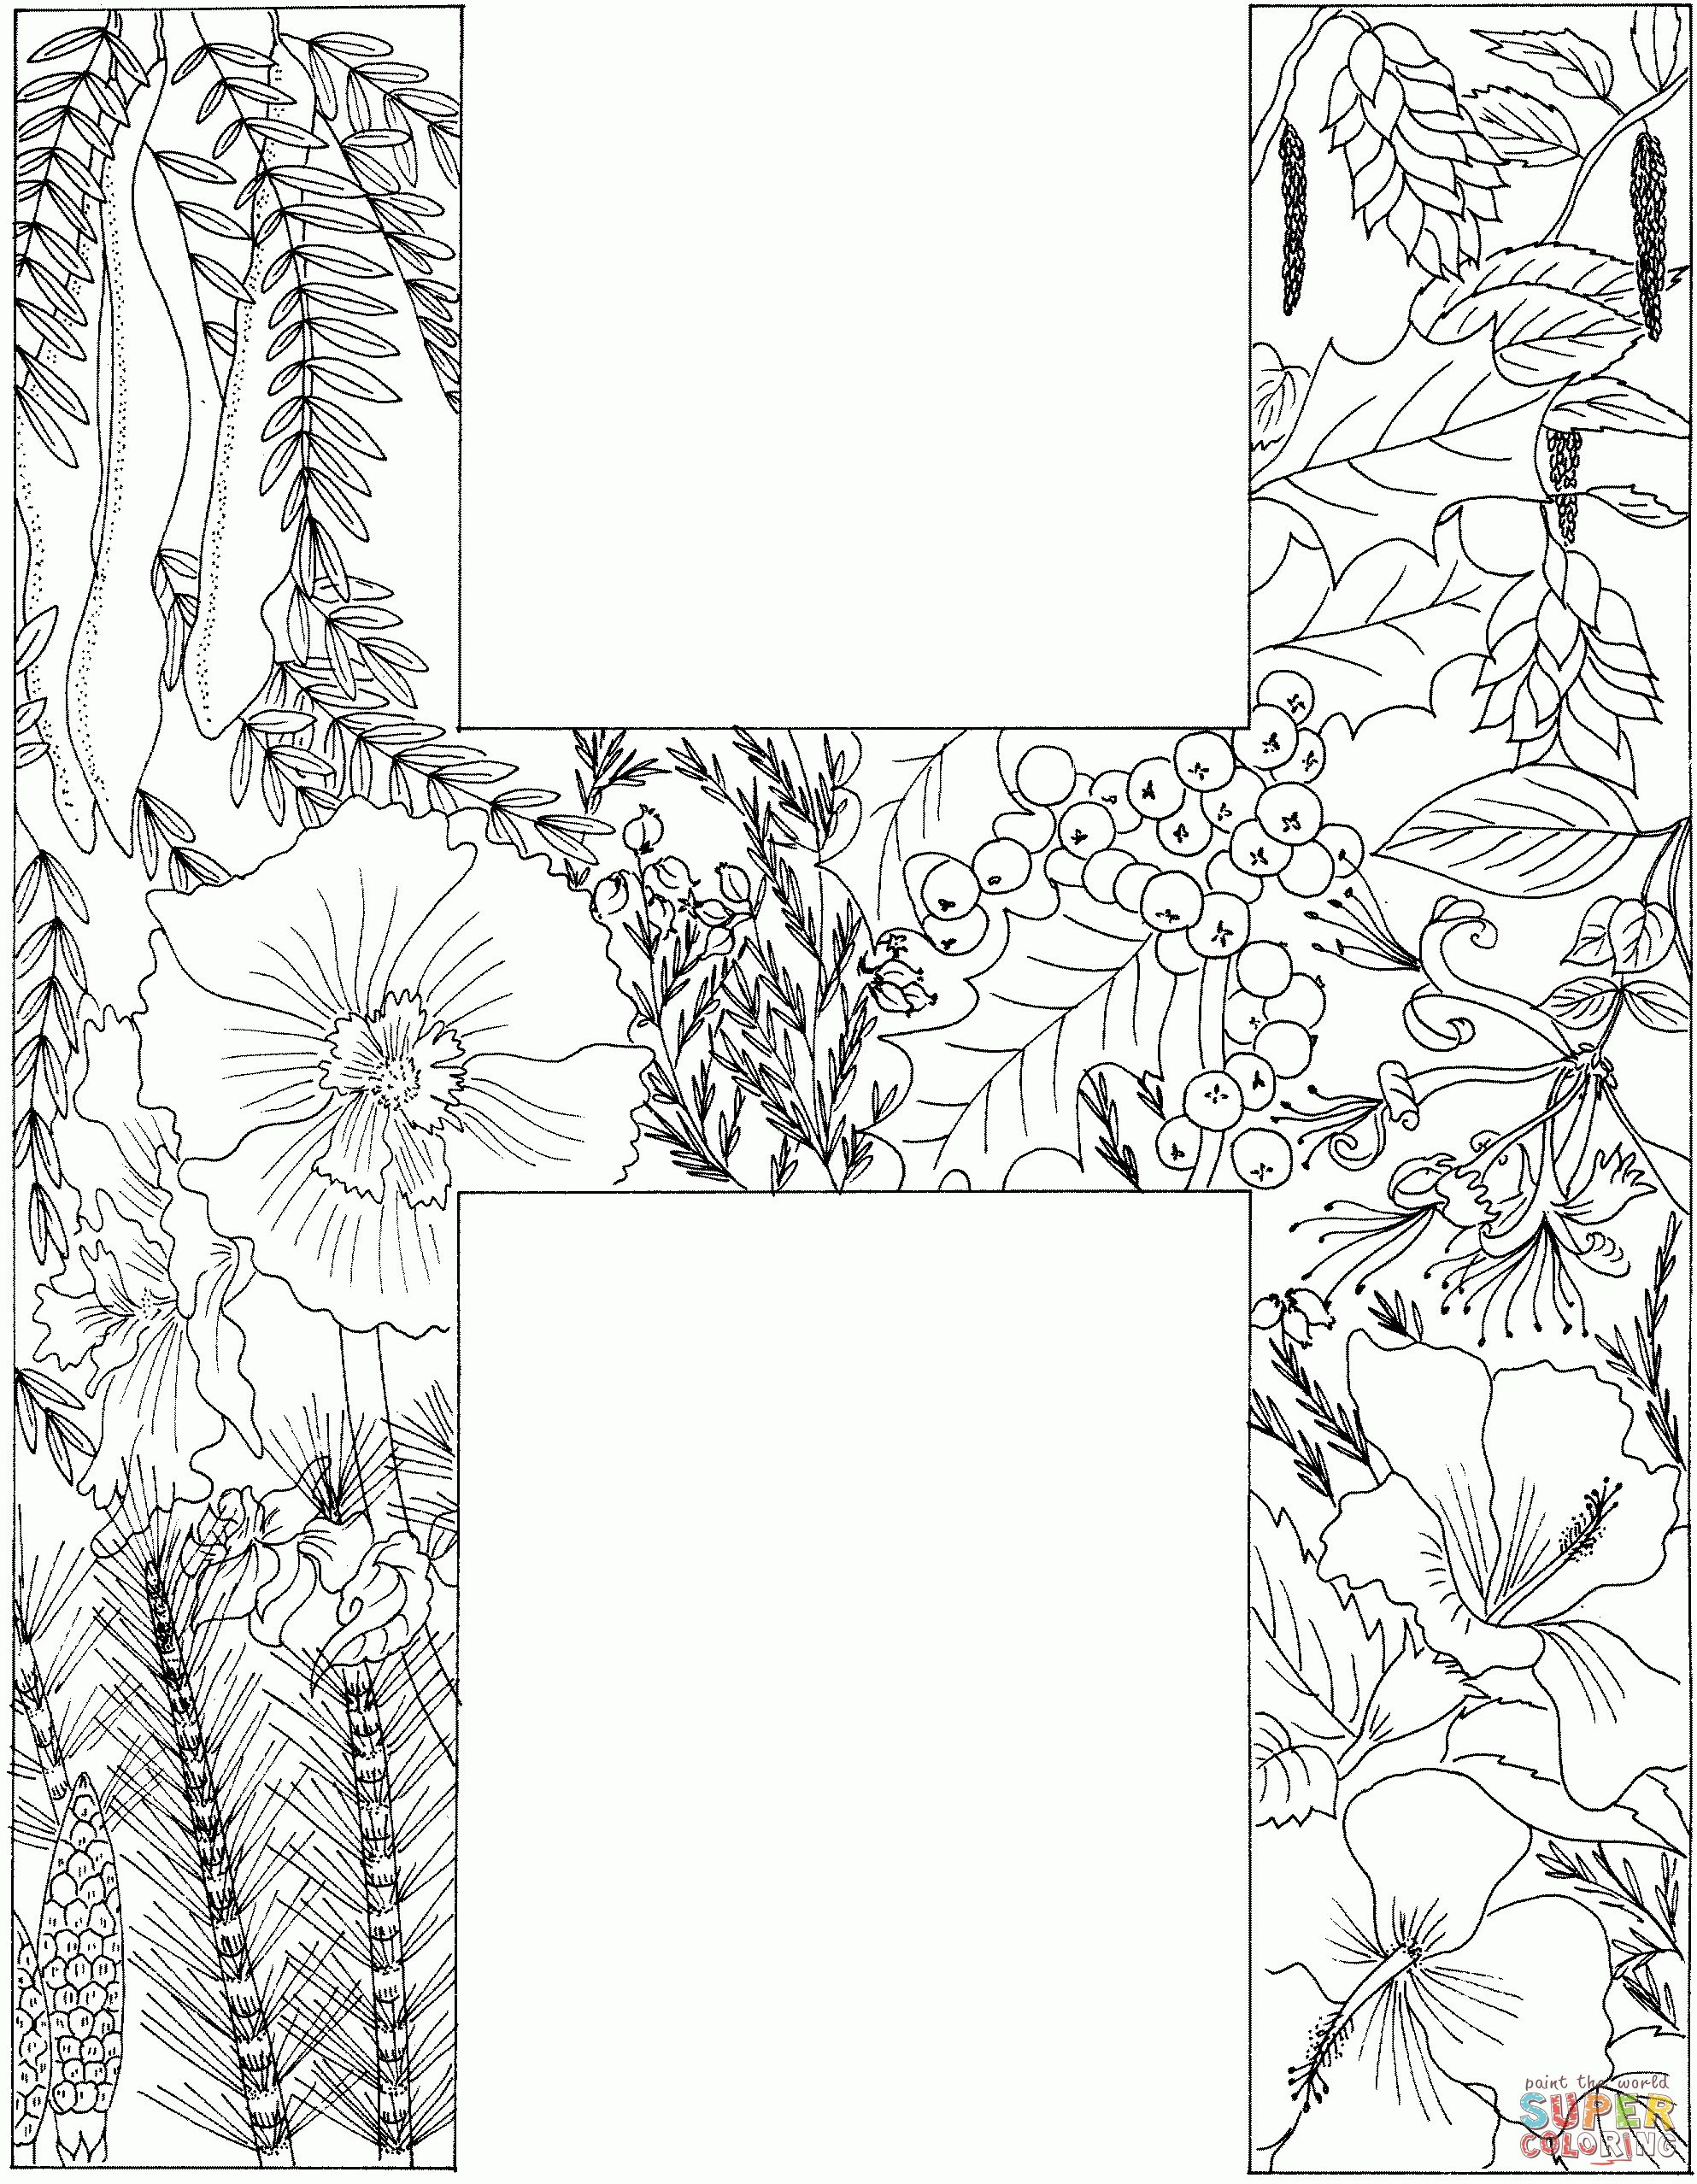 Letter H Coloring Pages For Adults | Coloring pages ...